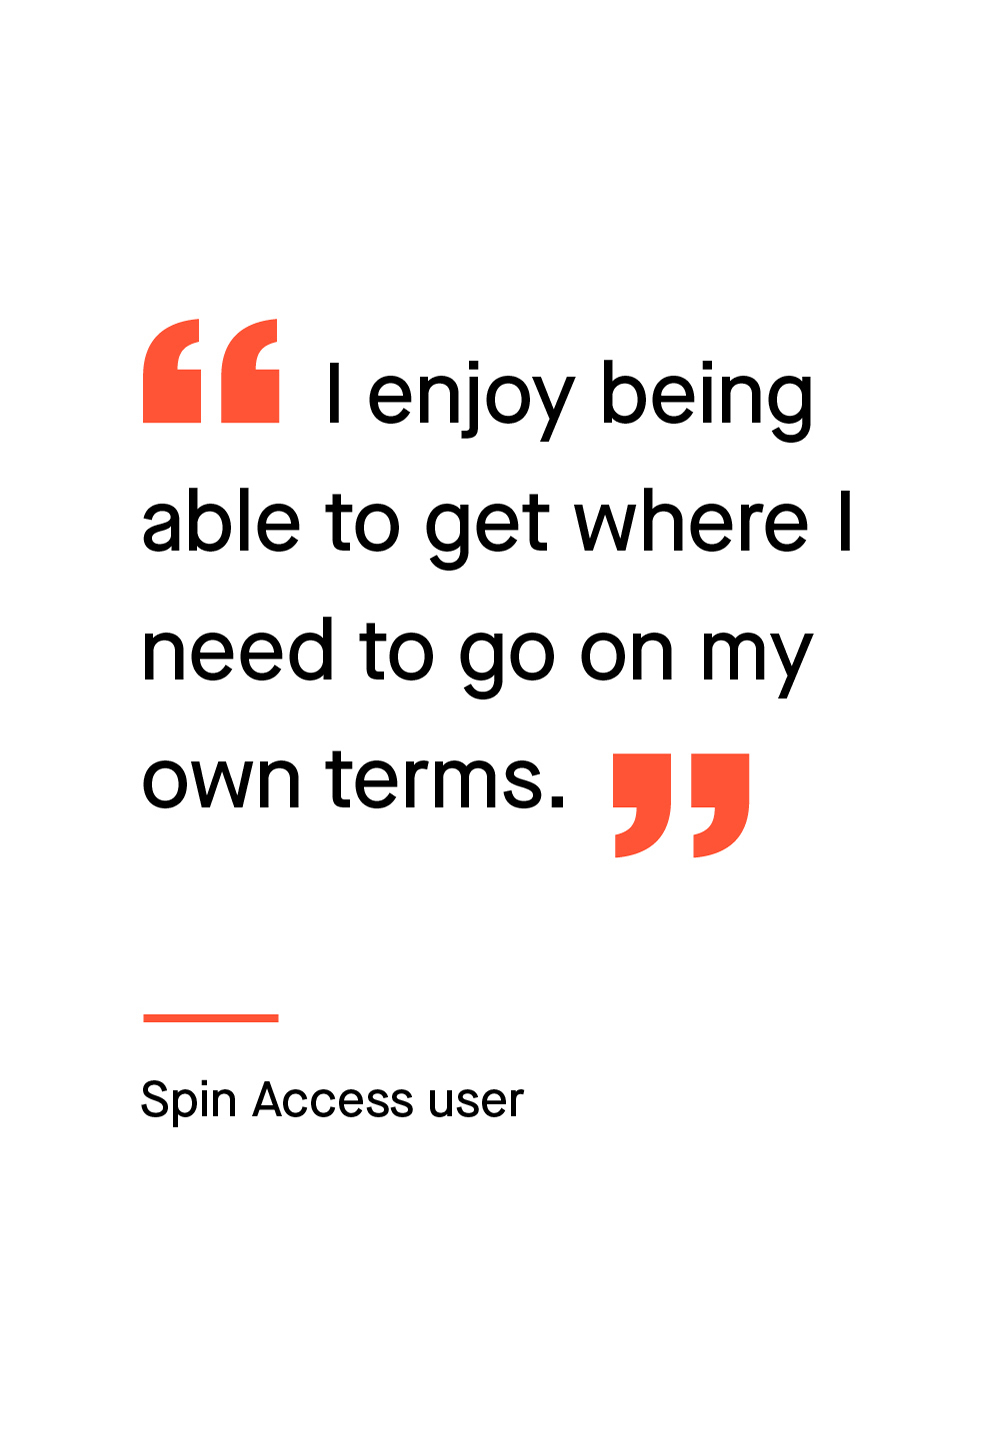 """A pull quote that reads, """"I enjoy being able to get where I need to go on my own terms."""" - Spin Access user."""